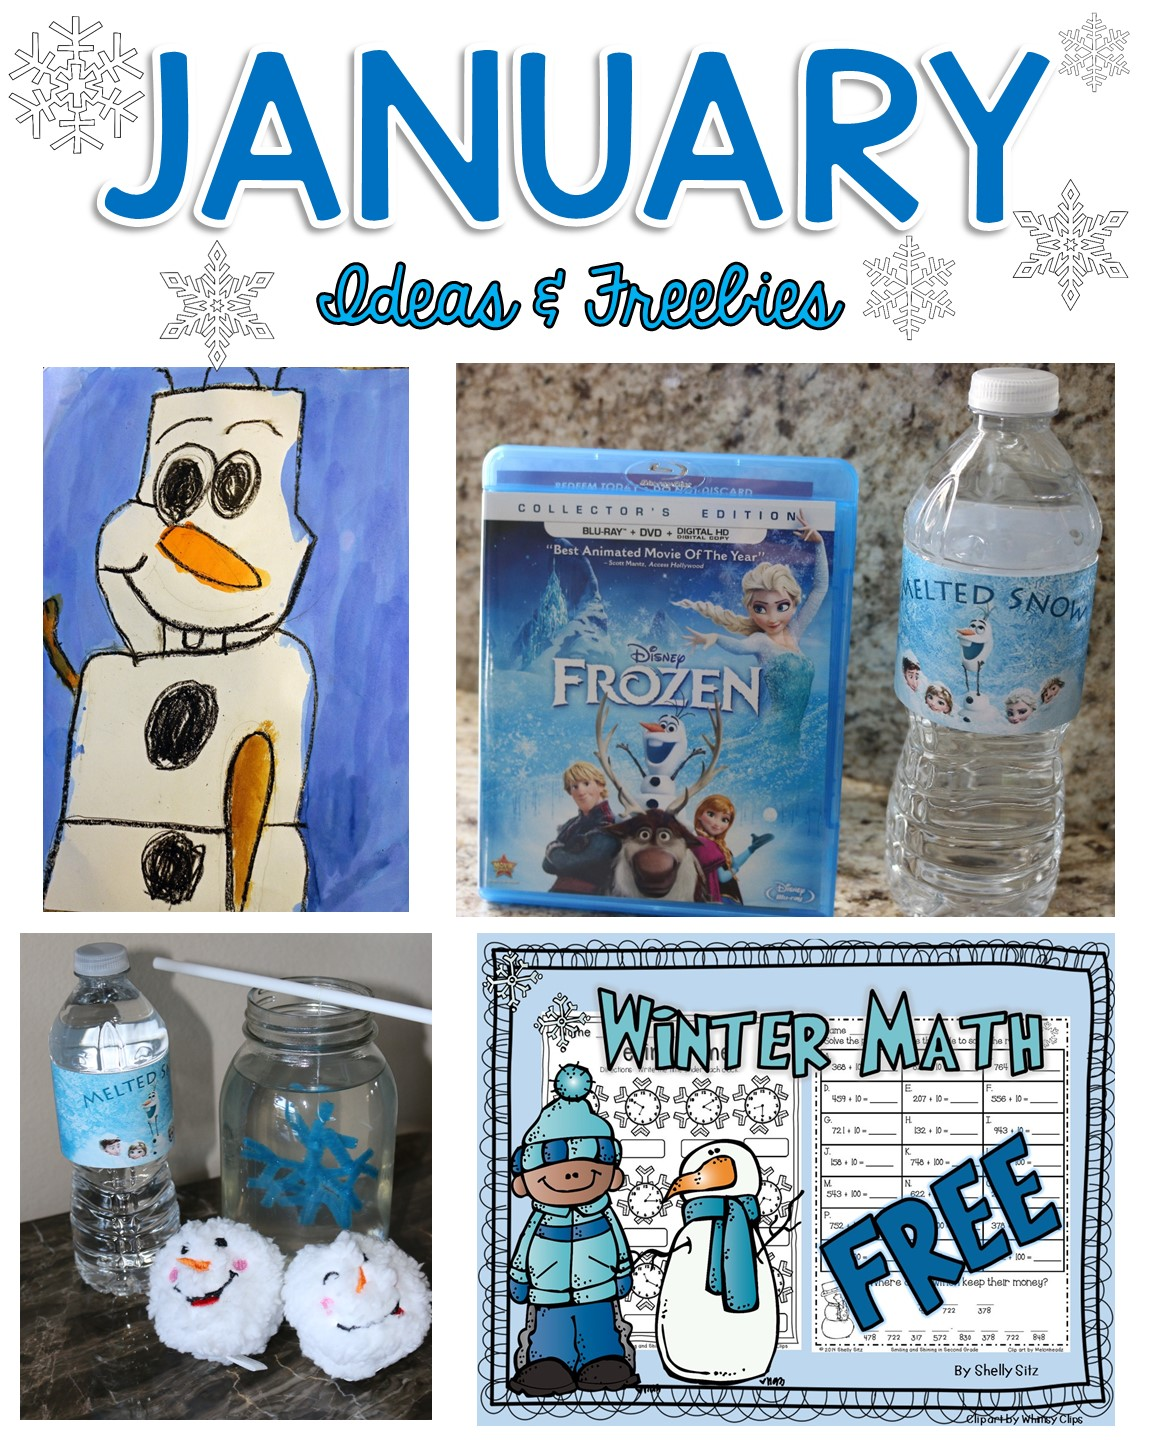 Smiling And Shining In Second Grade January Ideas And Freebies